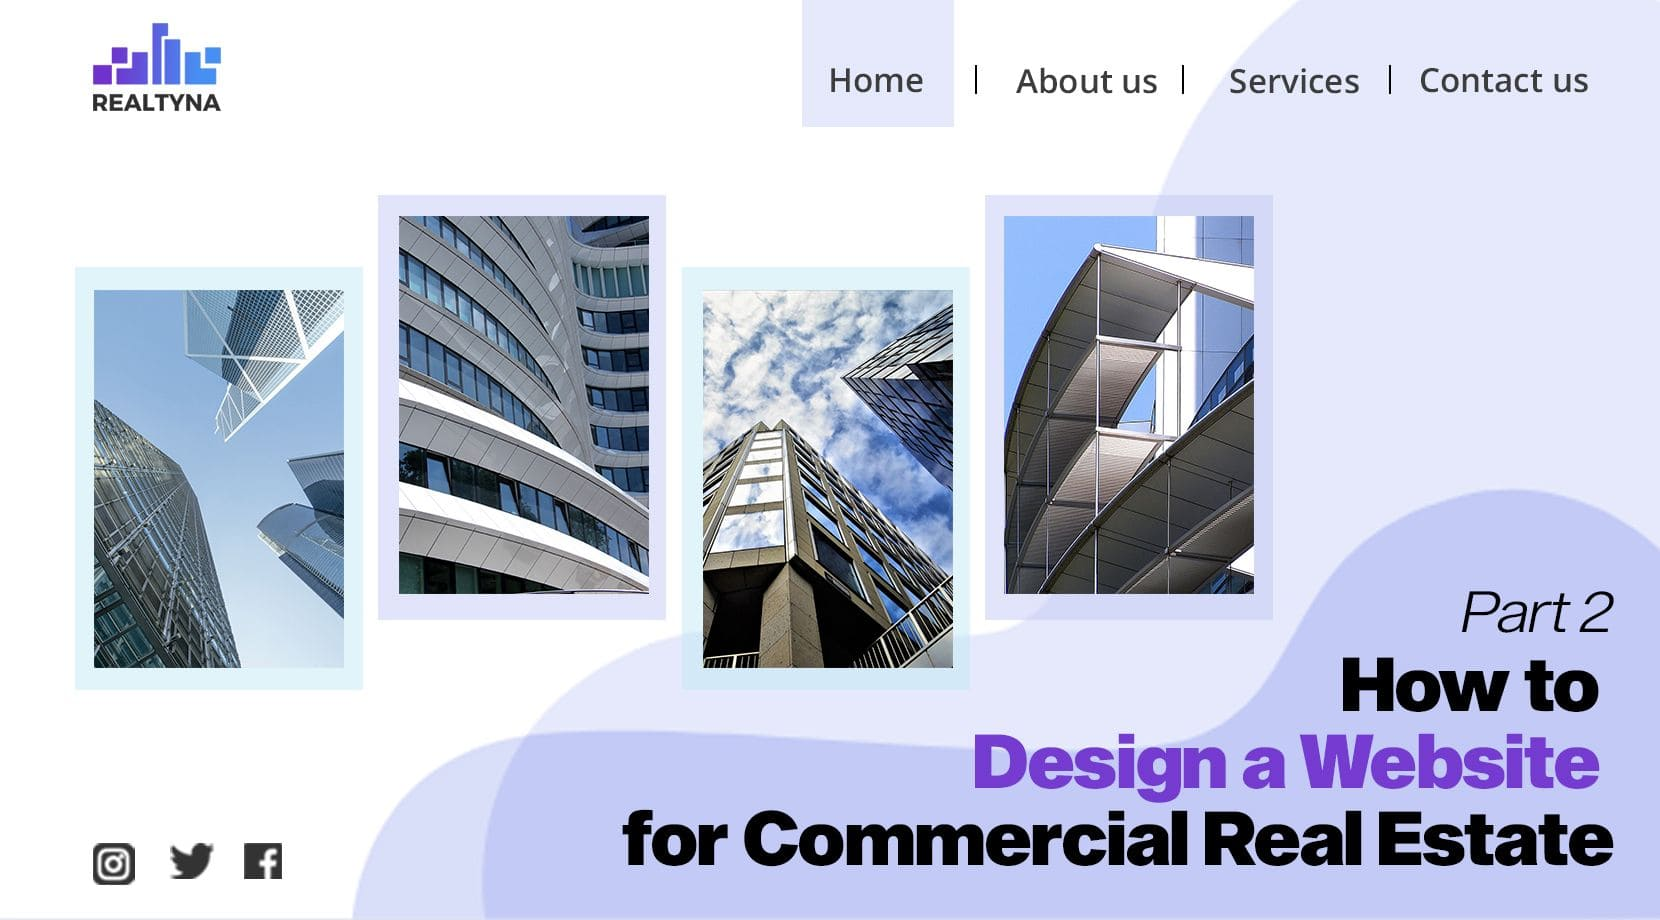 How to Design a Website for Commercial Real Estate: Part 2